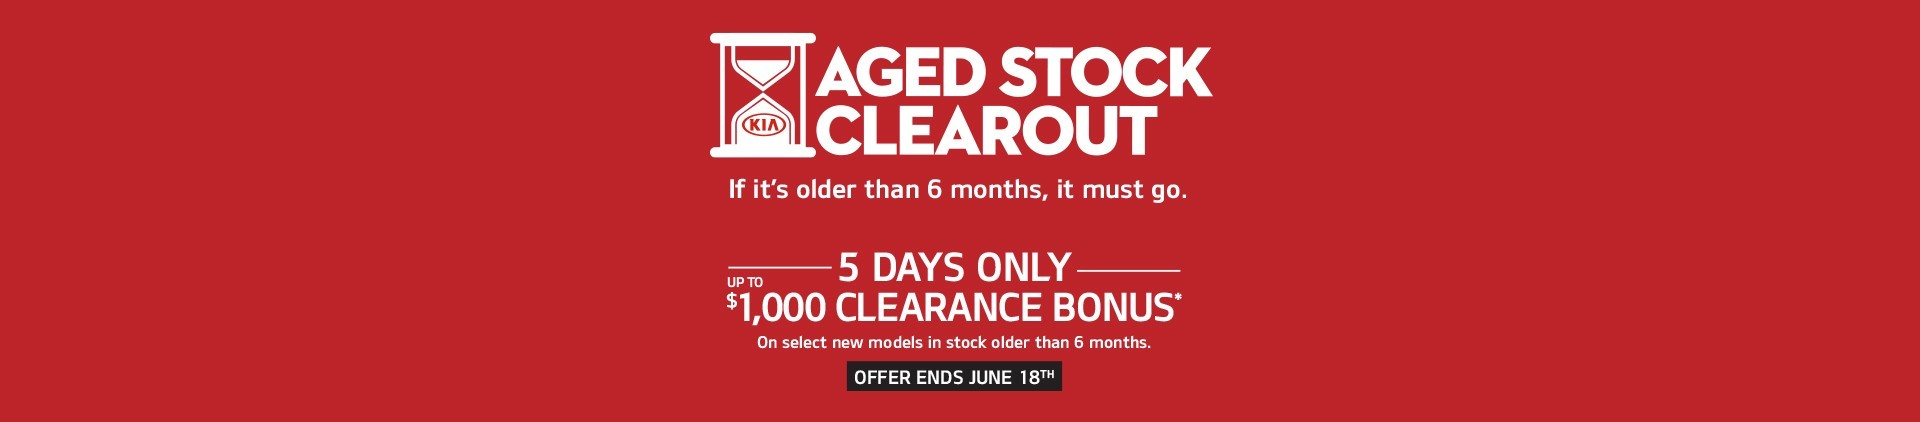 Aged Stock Clearout